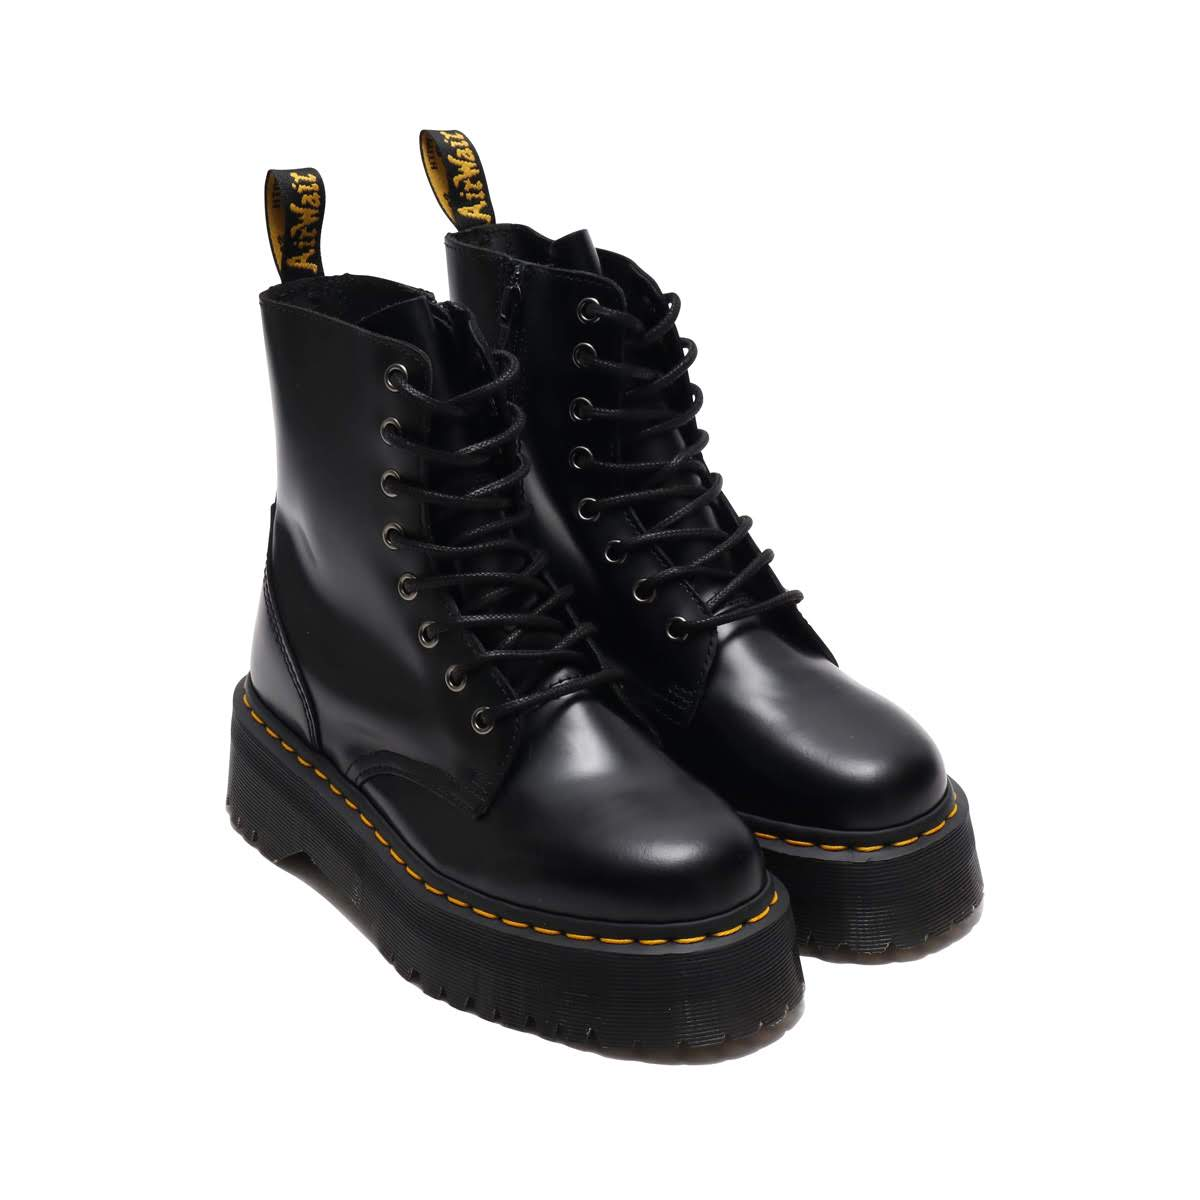 71741ef32cef3 It is 8 hall boots with the side zip that thick sole enhances a voluminous  feel. I attach the inside zip that ガツ っとした volume sole and putting on and  ...